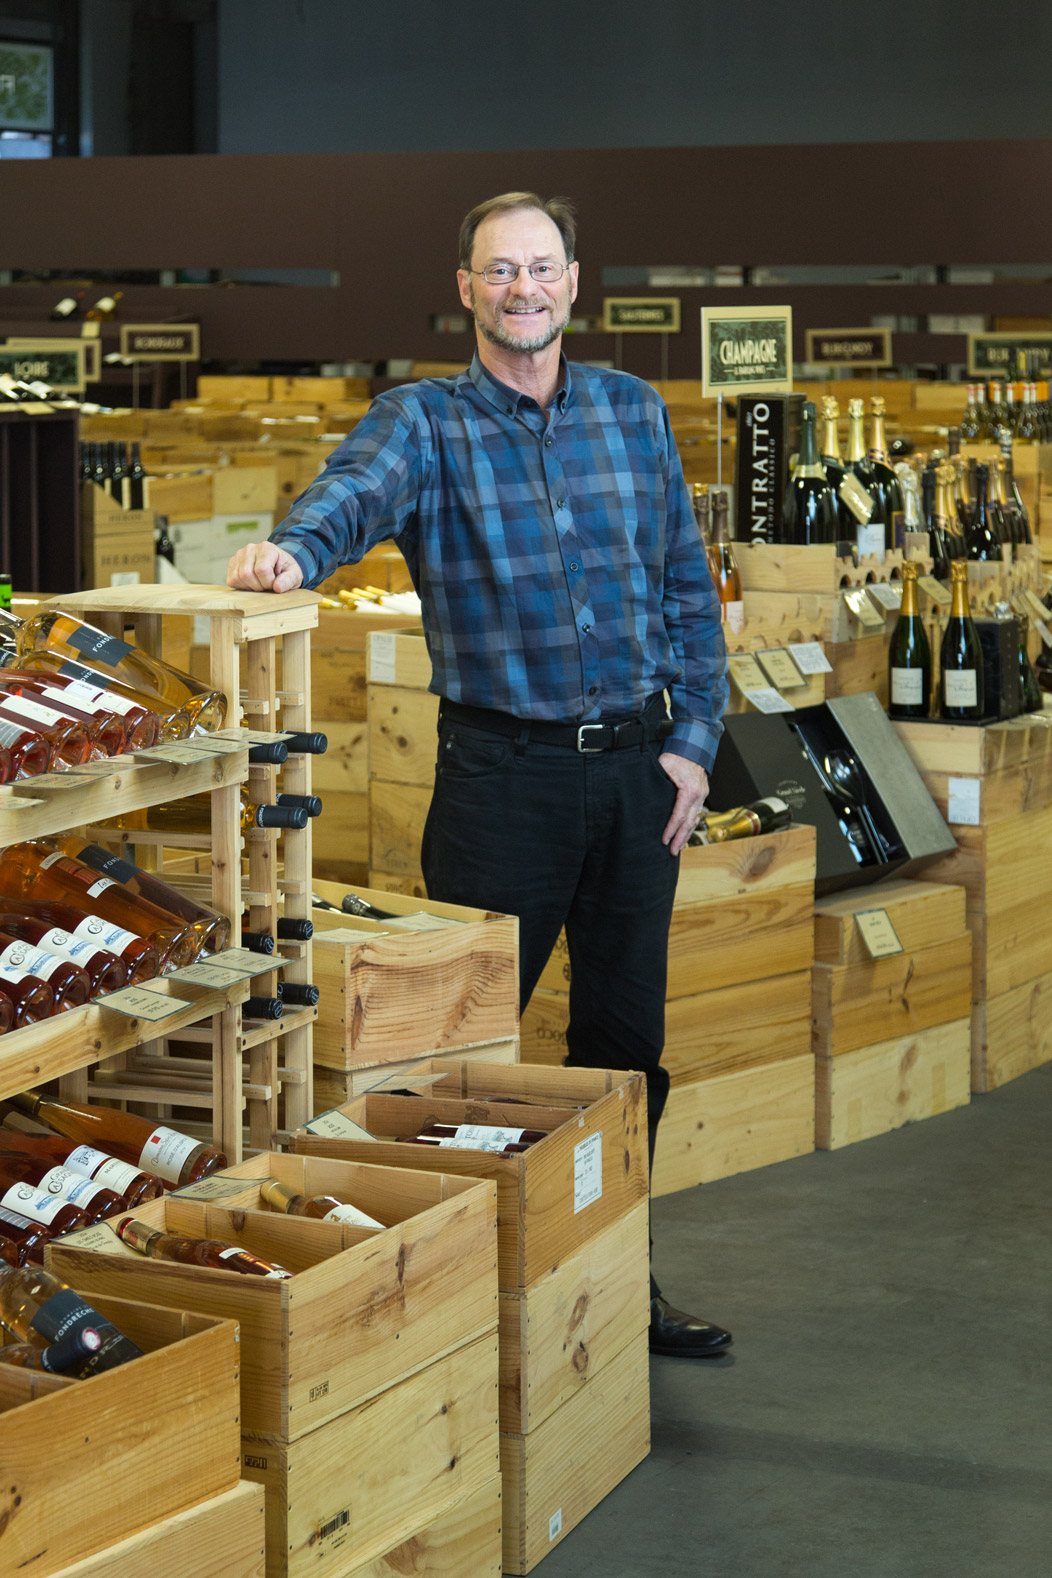 David Netzer of The Wine House